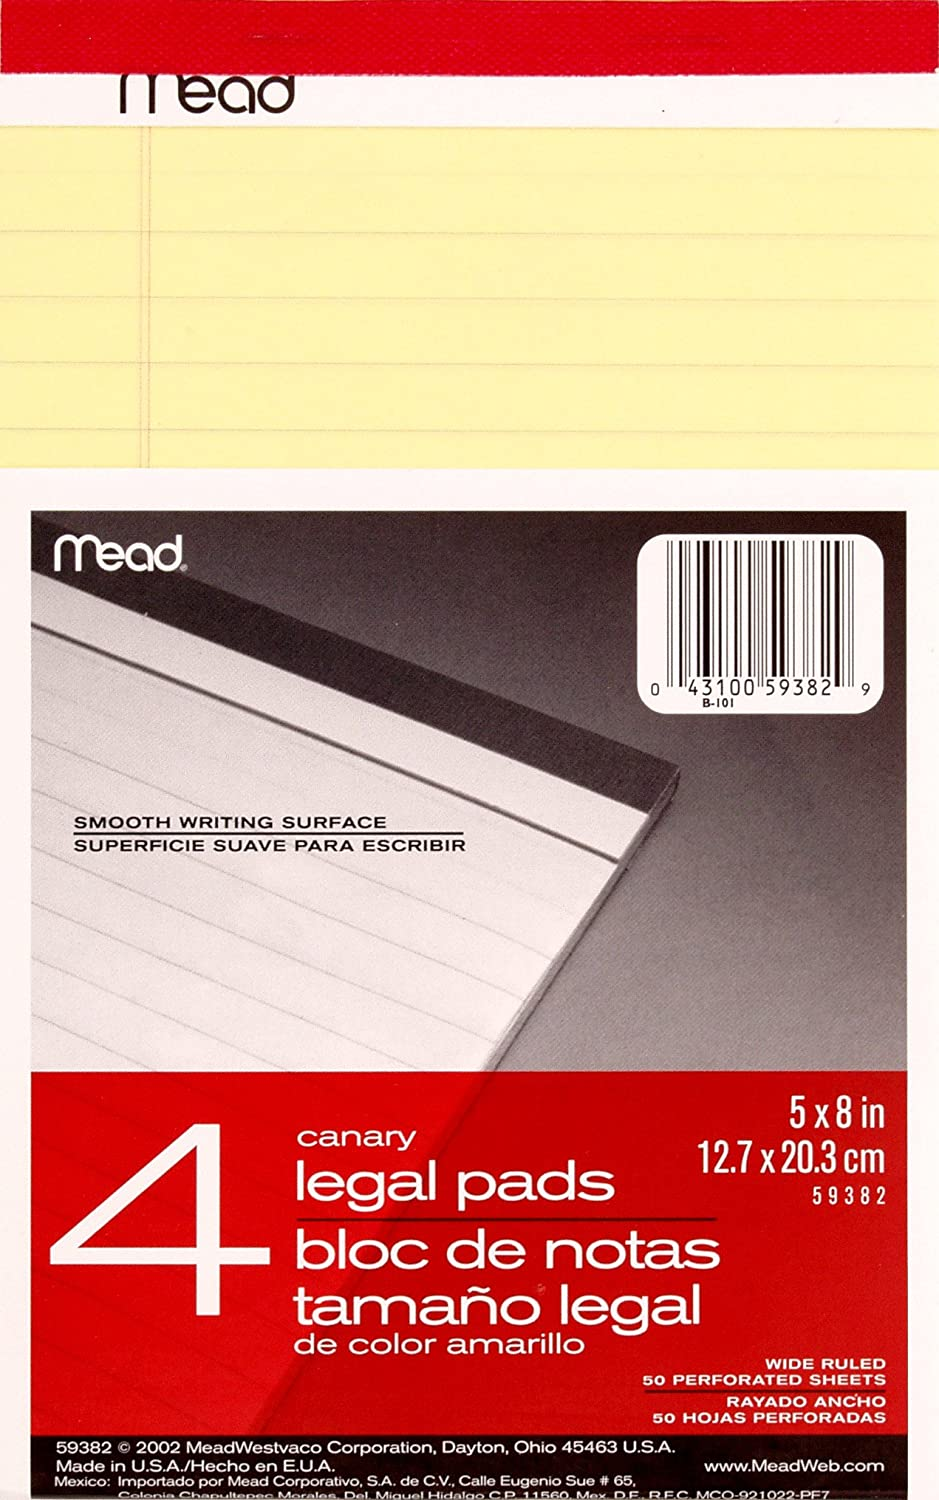 Mead Canary Junior Legal Pads, 5 x 8 Inch, 4 Pack 50 Sheets (59382)